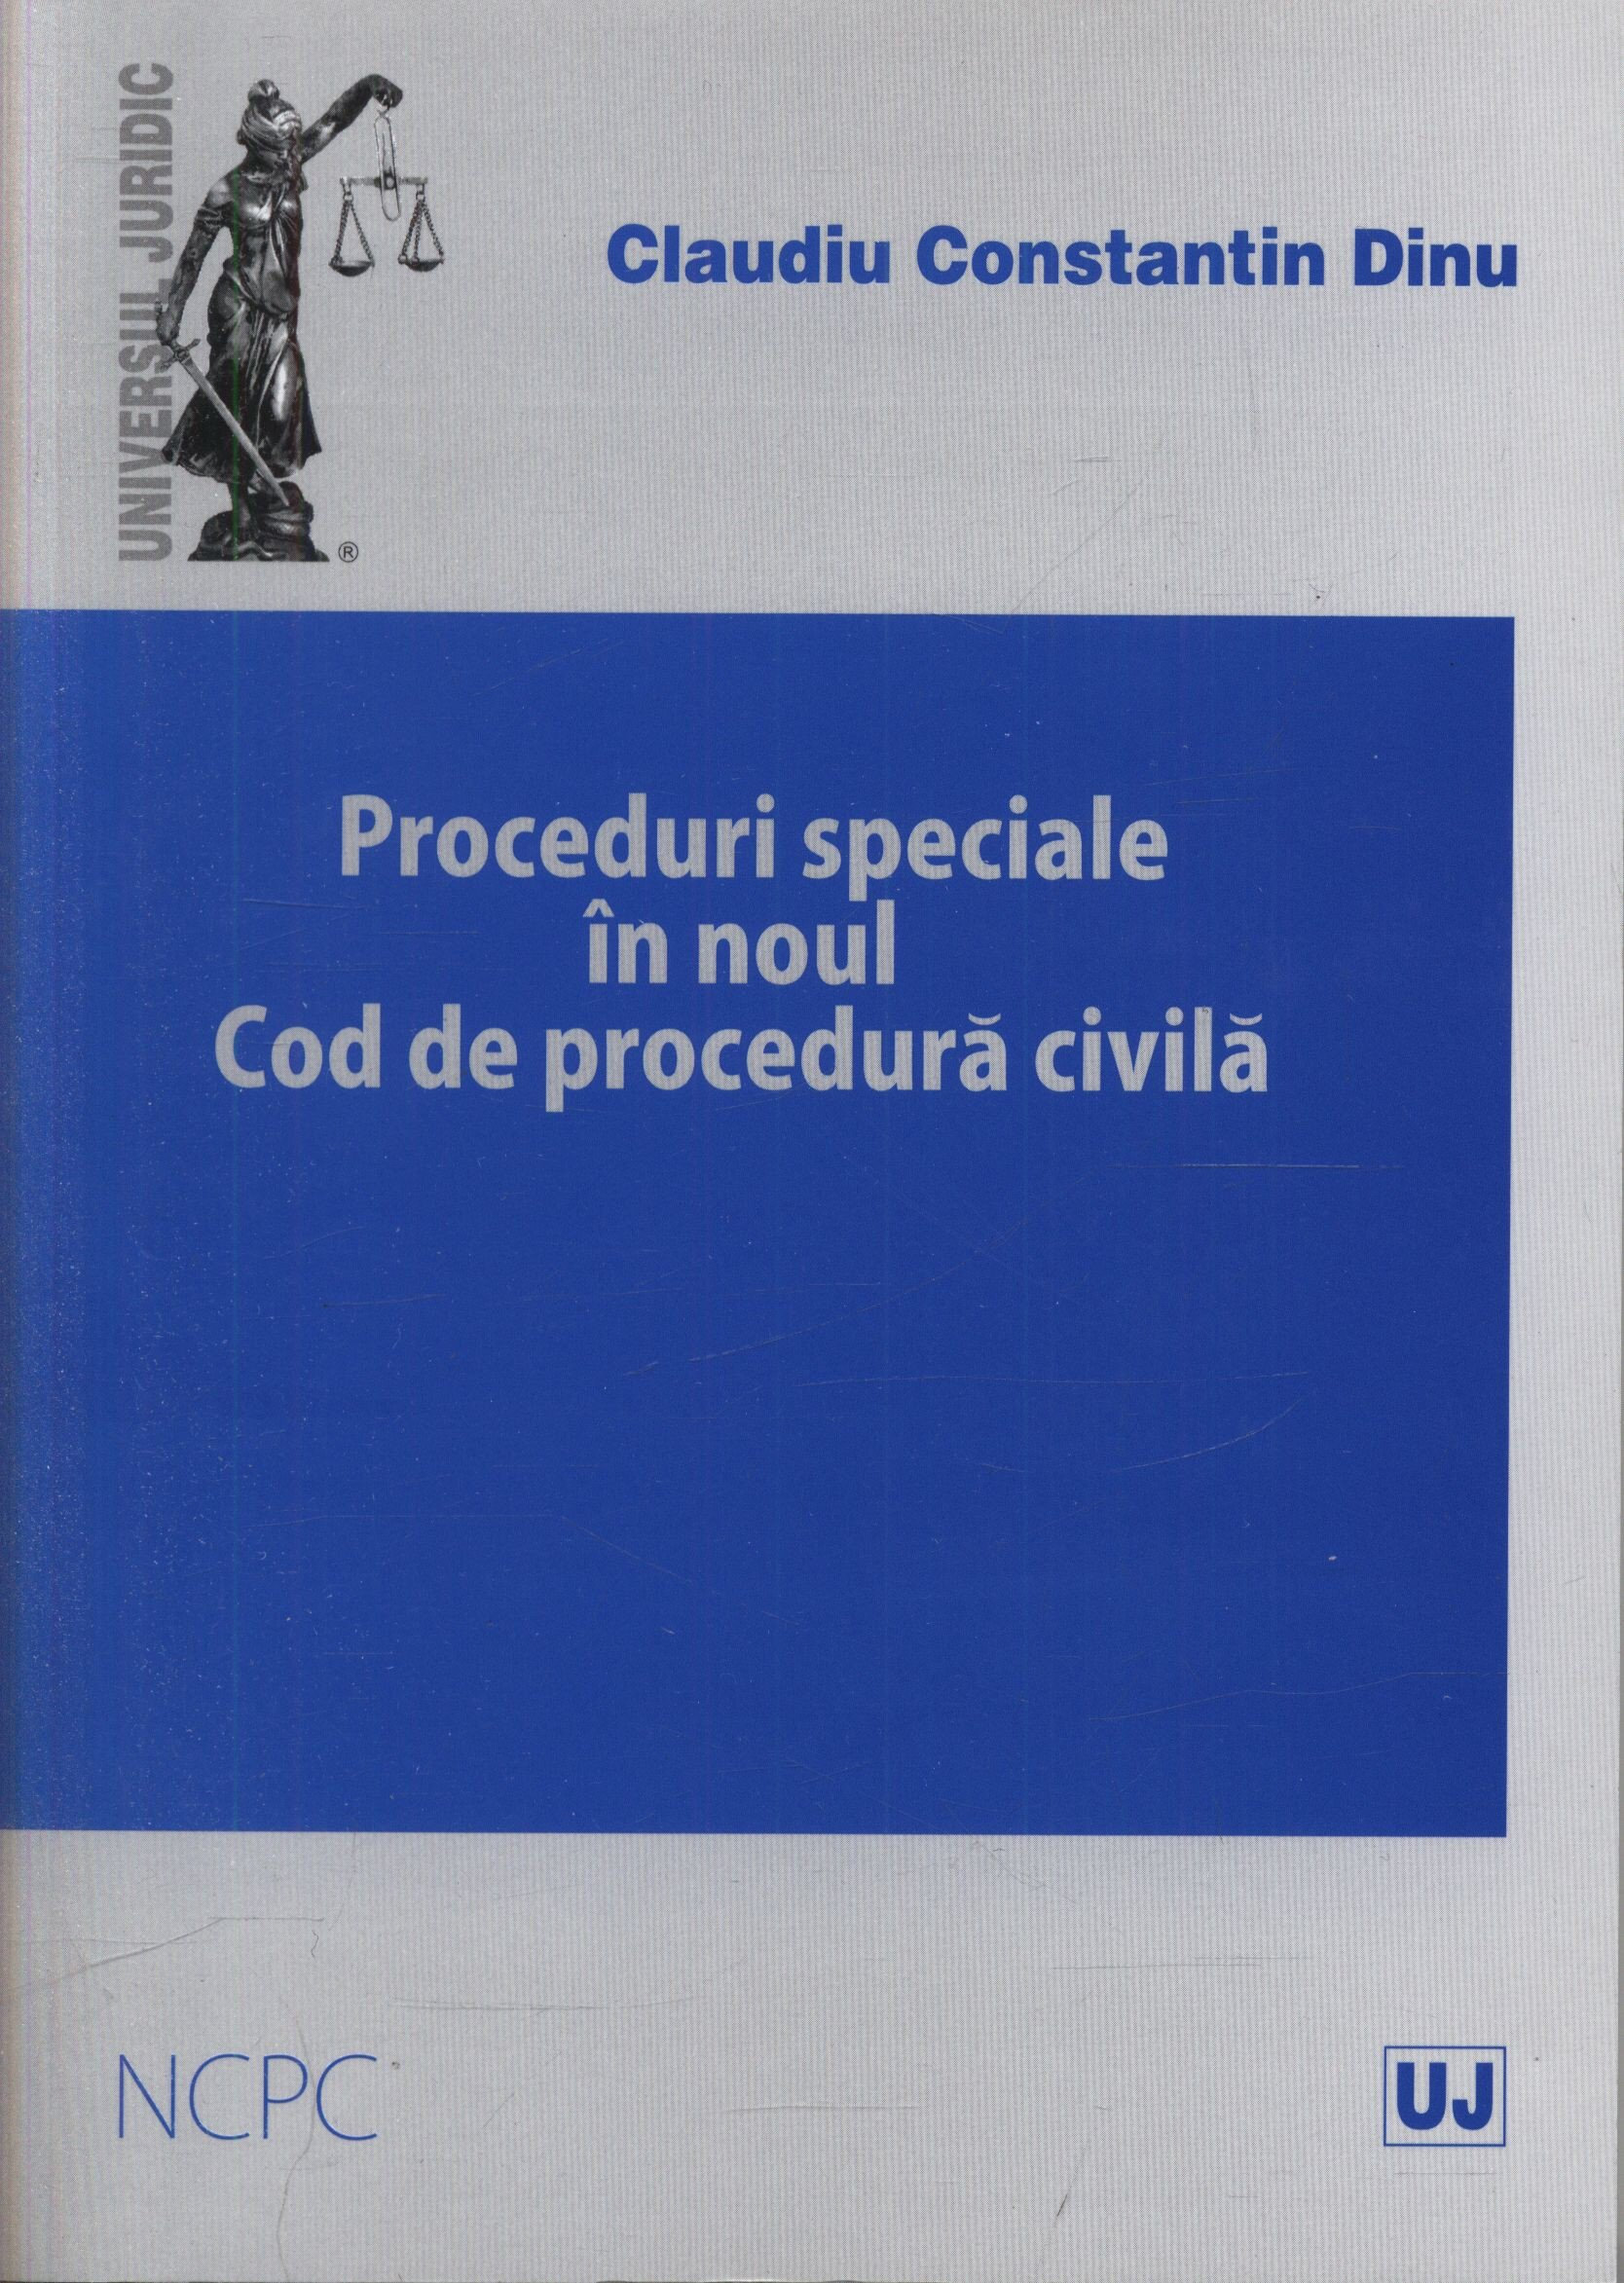 Proceduri speciale in Noul cod de procedura civila